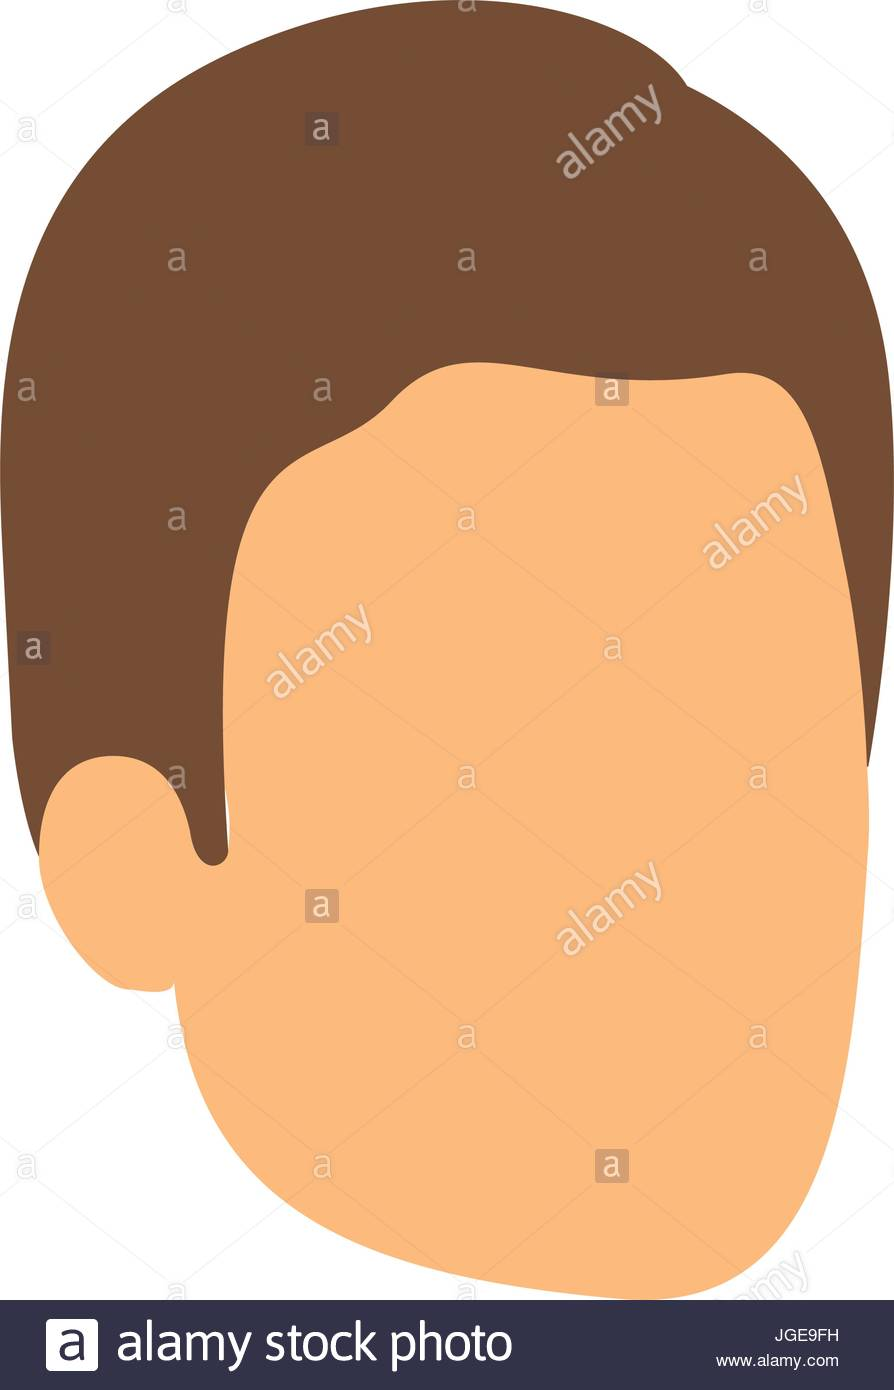 894x1390 Colorful Silhouette Of Man Faceless With Brown Hair Stock Vector